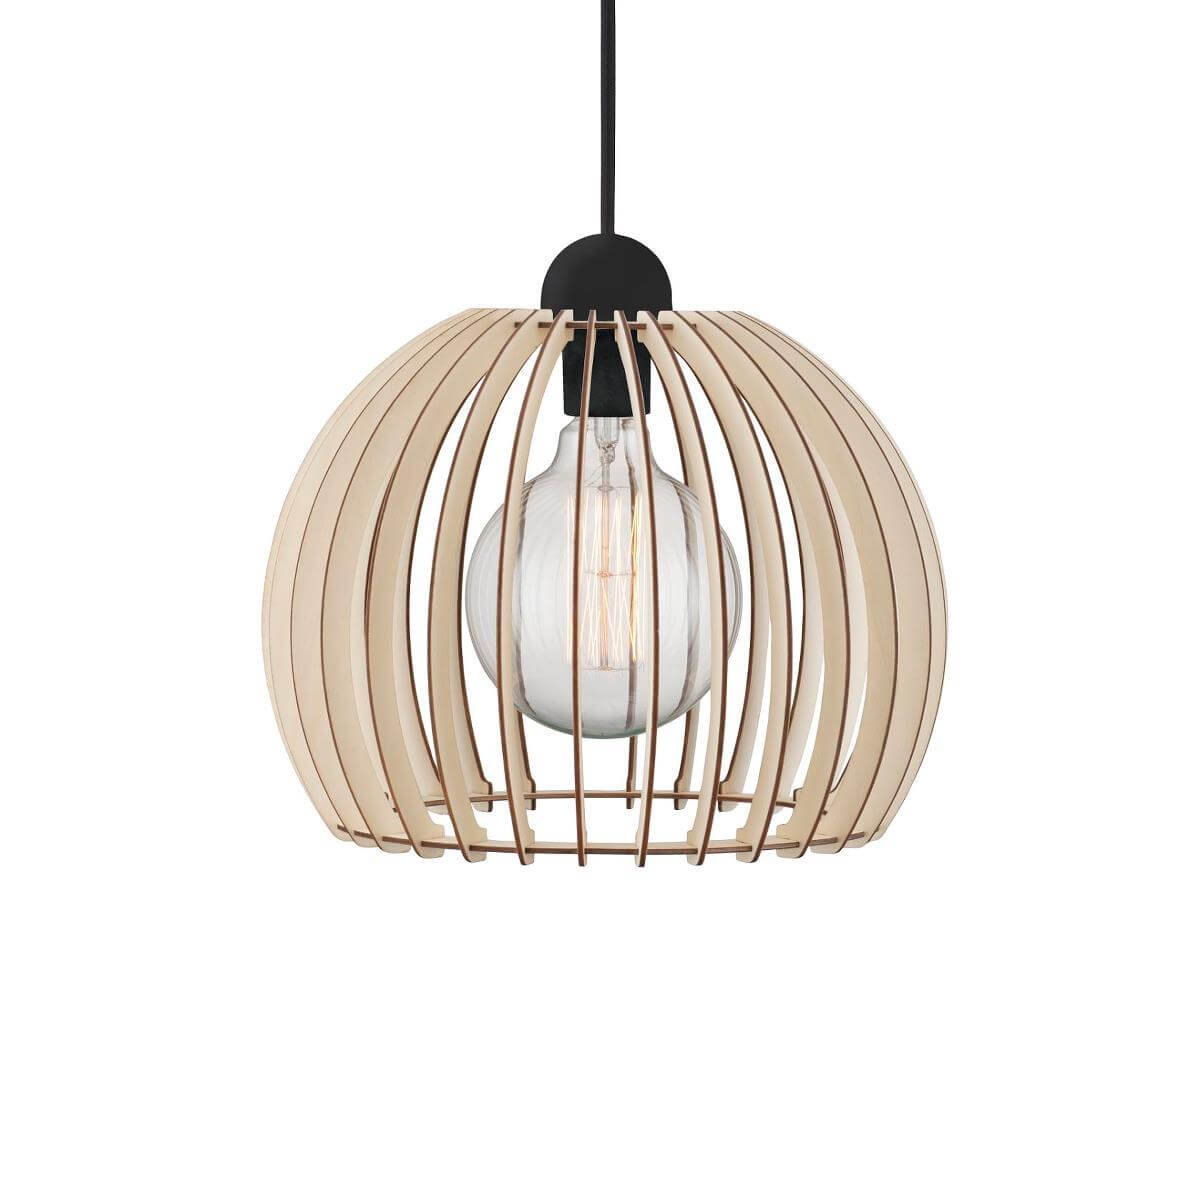 Suspension en bois ajourée Chino Medium - Nordlux